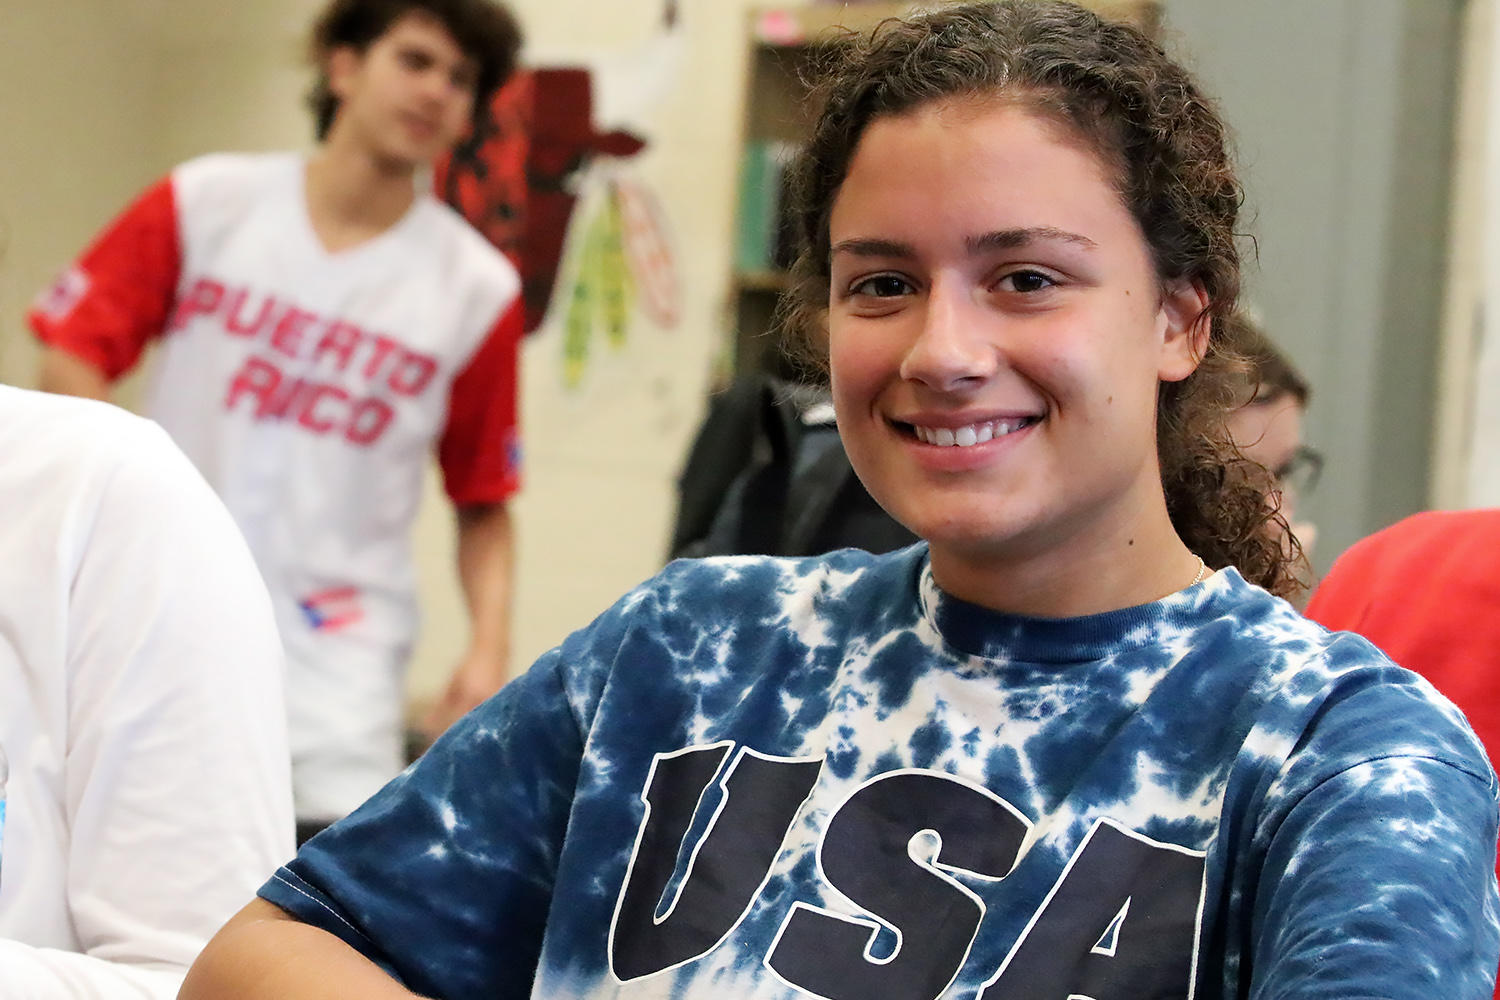 EPHS student wears red, white and blue for 'Merica Day.